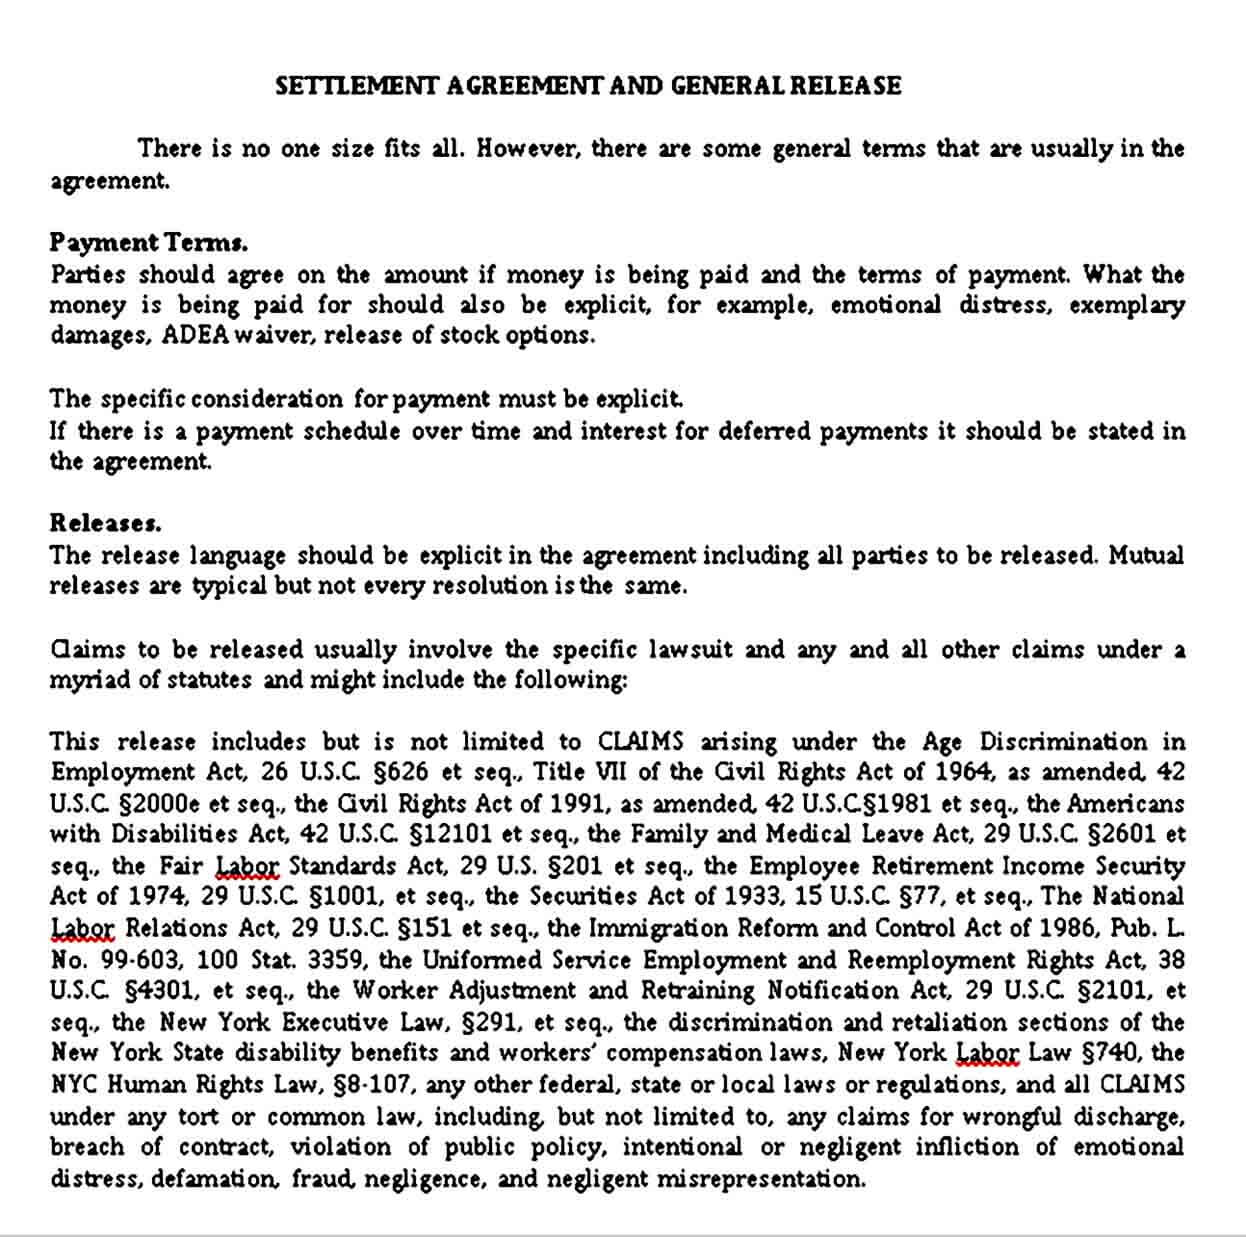 Settlement Agreement and General Release Document